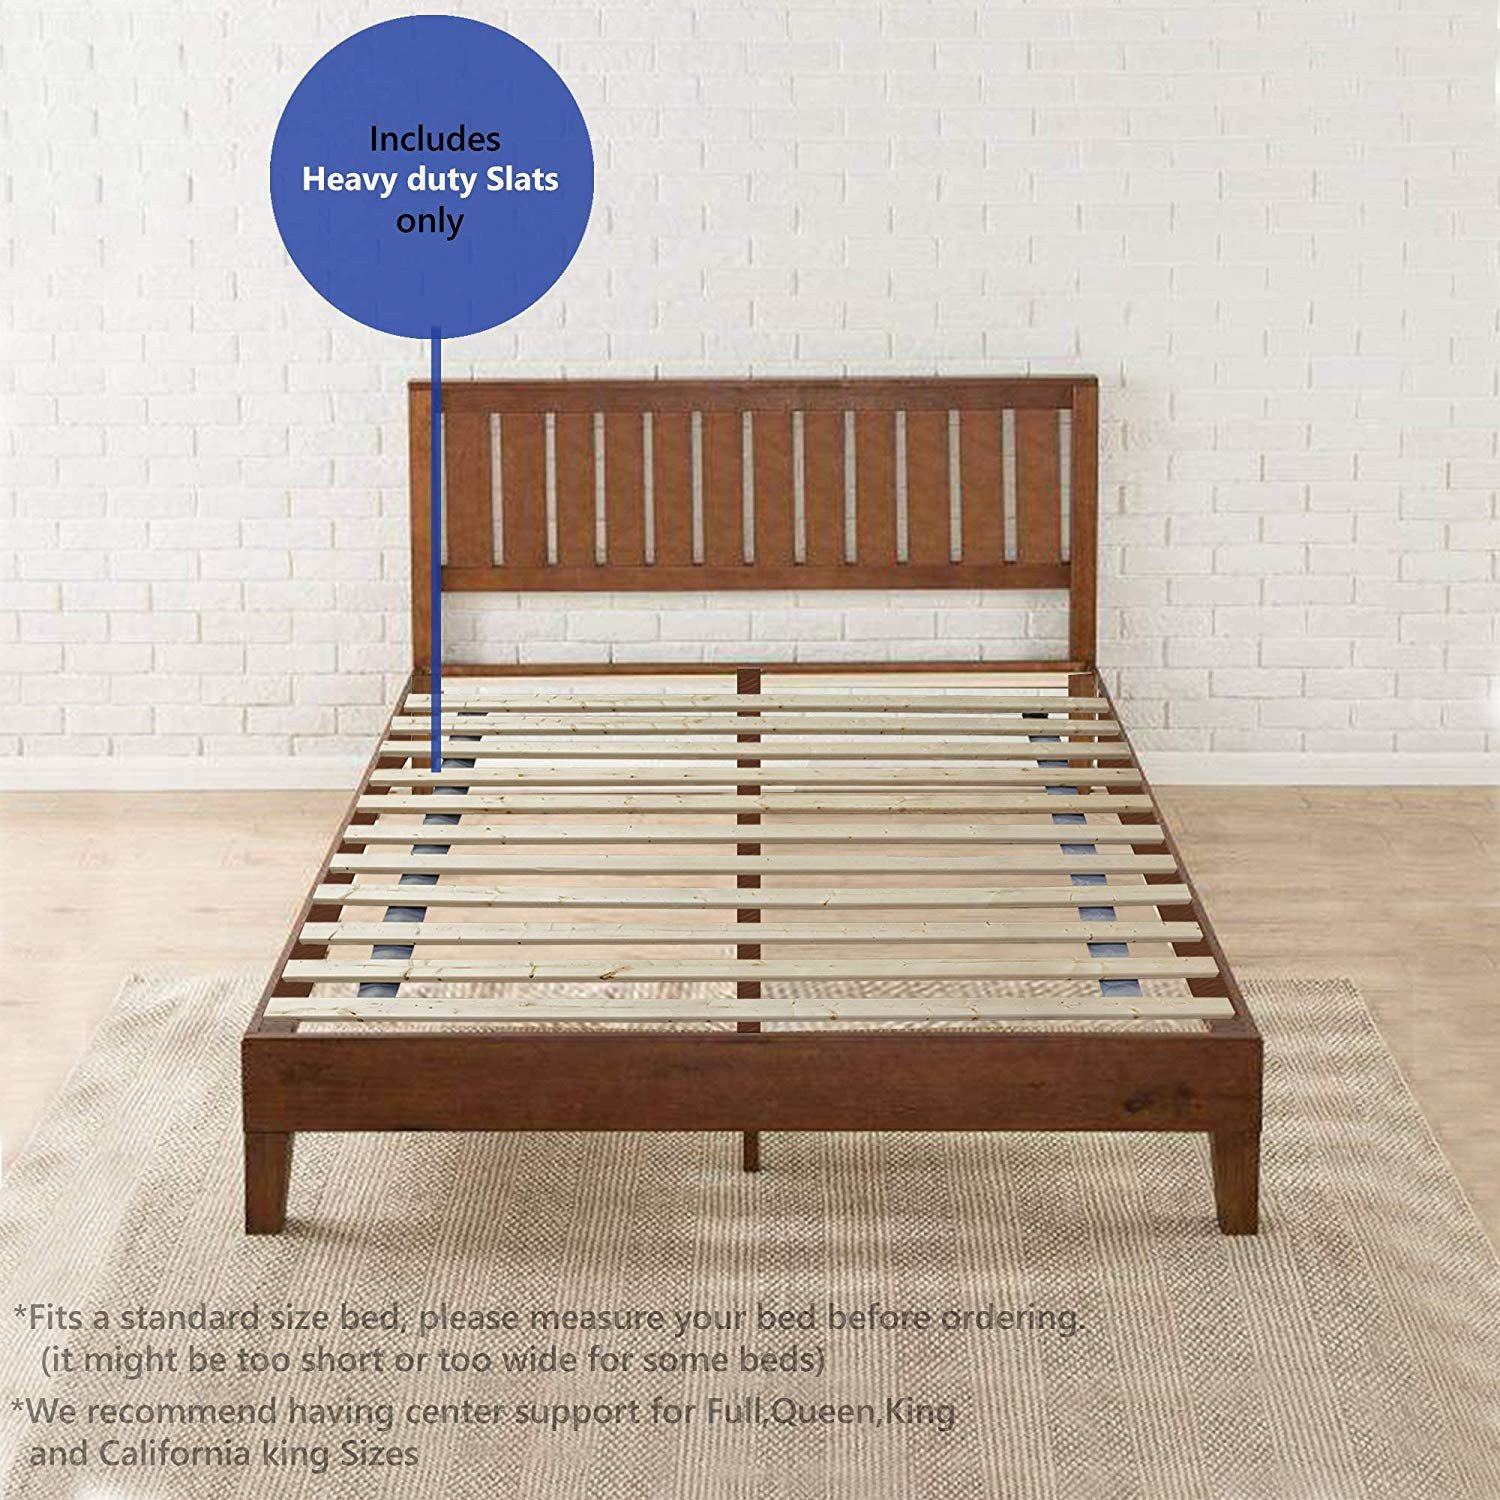 California King Size Bedroom Furniture Set Best Of Spring solution 1 5 Inch Heavy Duty Mattress Support Wooden Bunkie Board Slats California King Beige